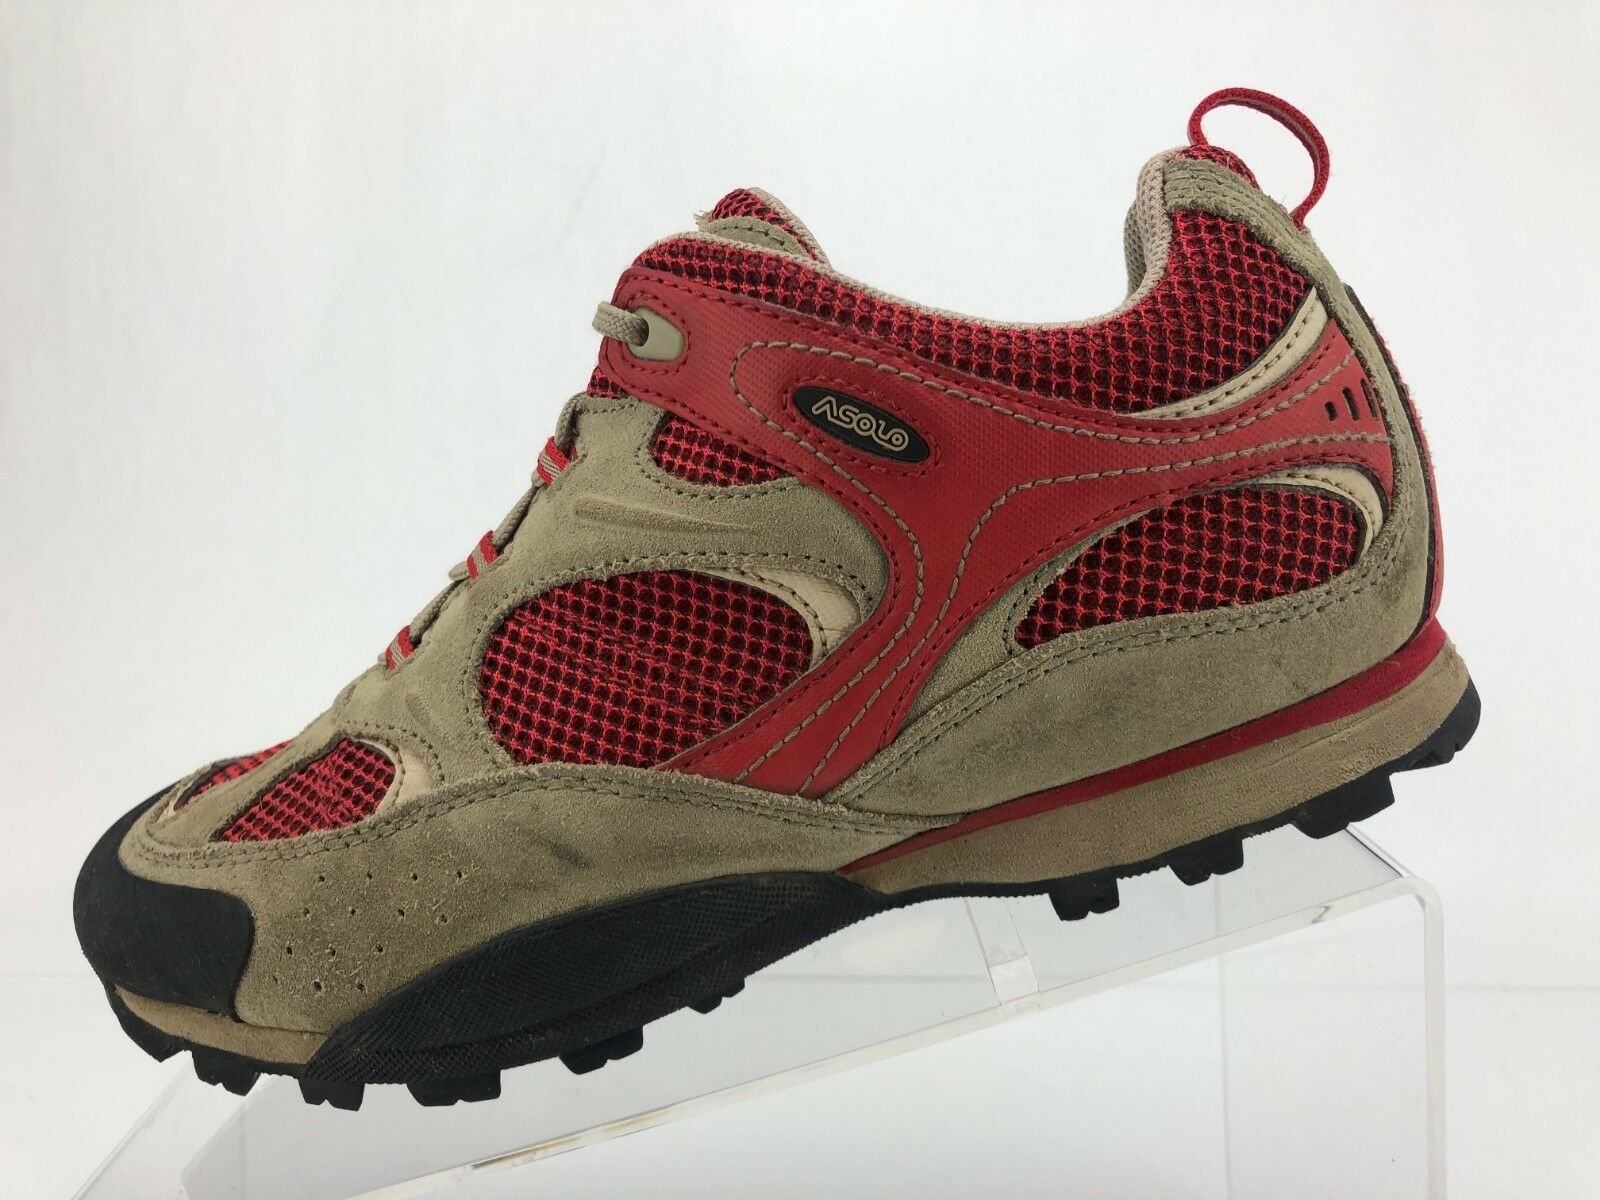 Asolo Hiking shoes Outdoor Sports All Terrain Multicolord Sneakers Womens 8.5